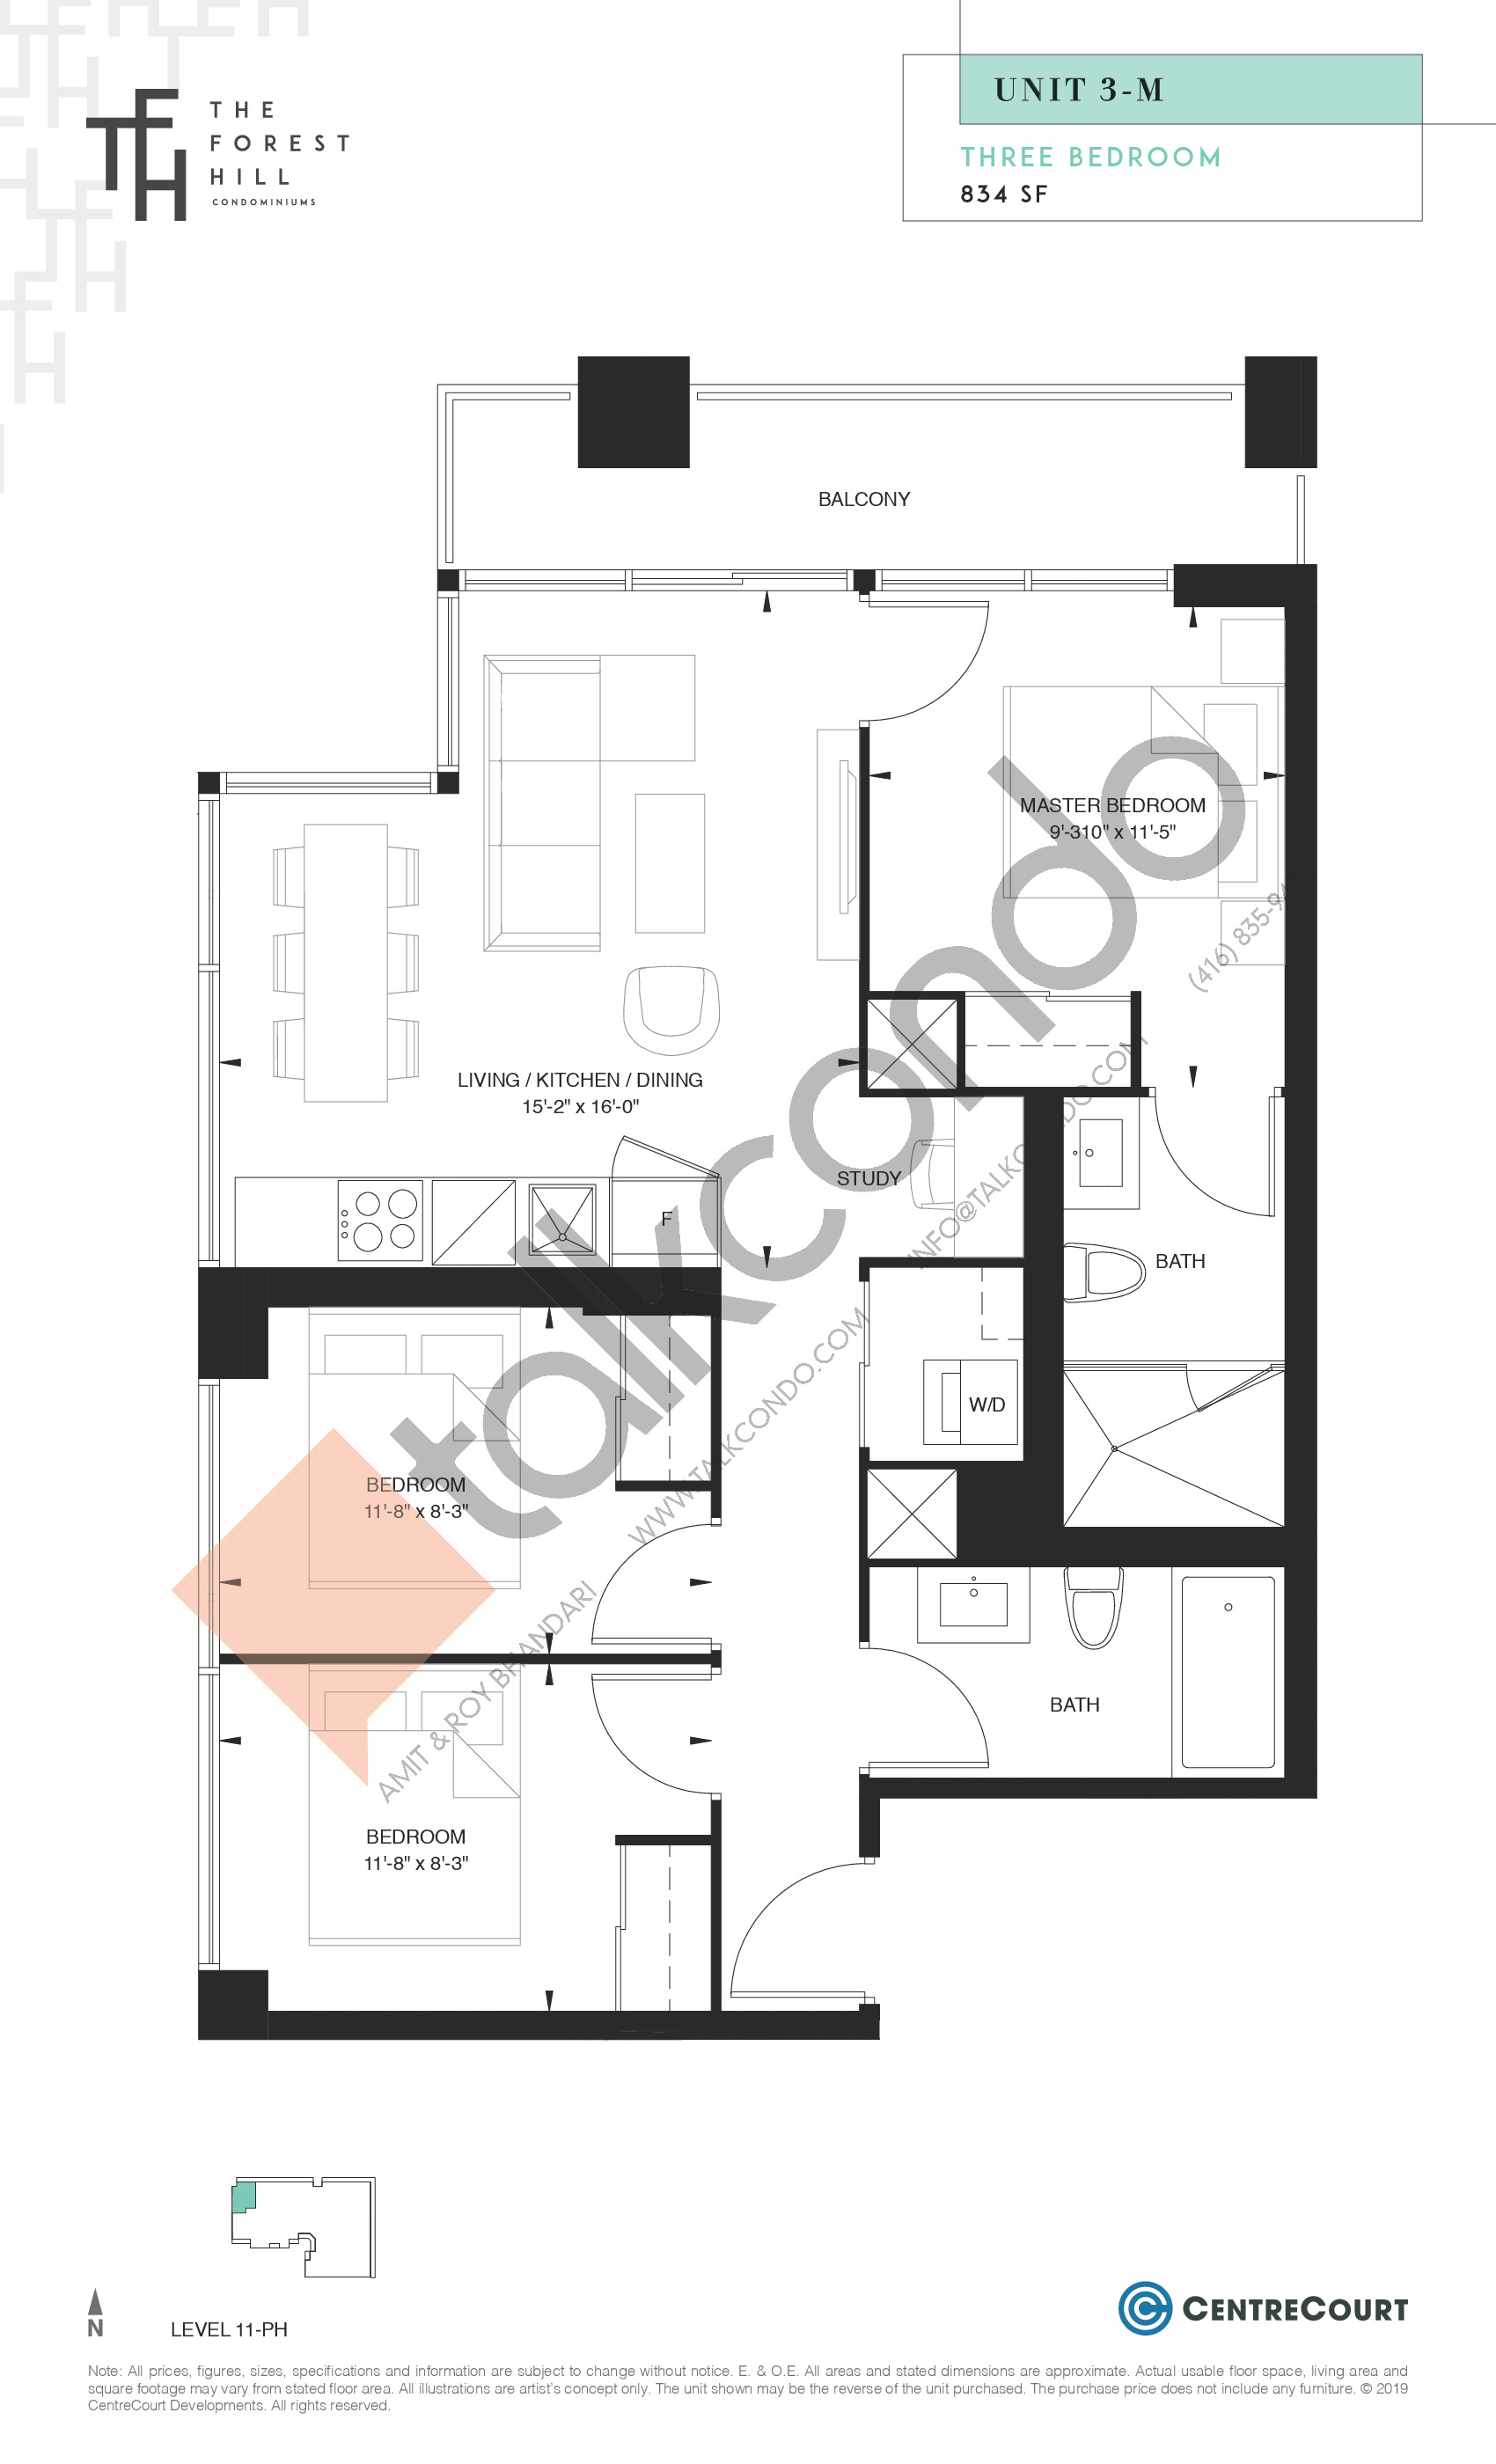 Unit 3-M Floor Plan at The Forest Hill Condos - 834 sq.ft